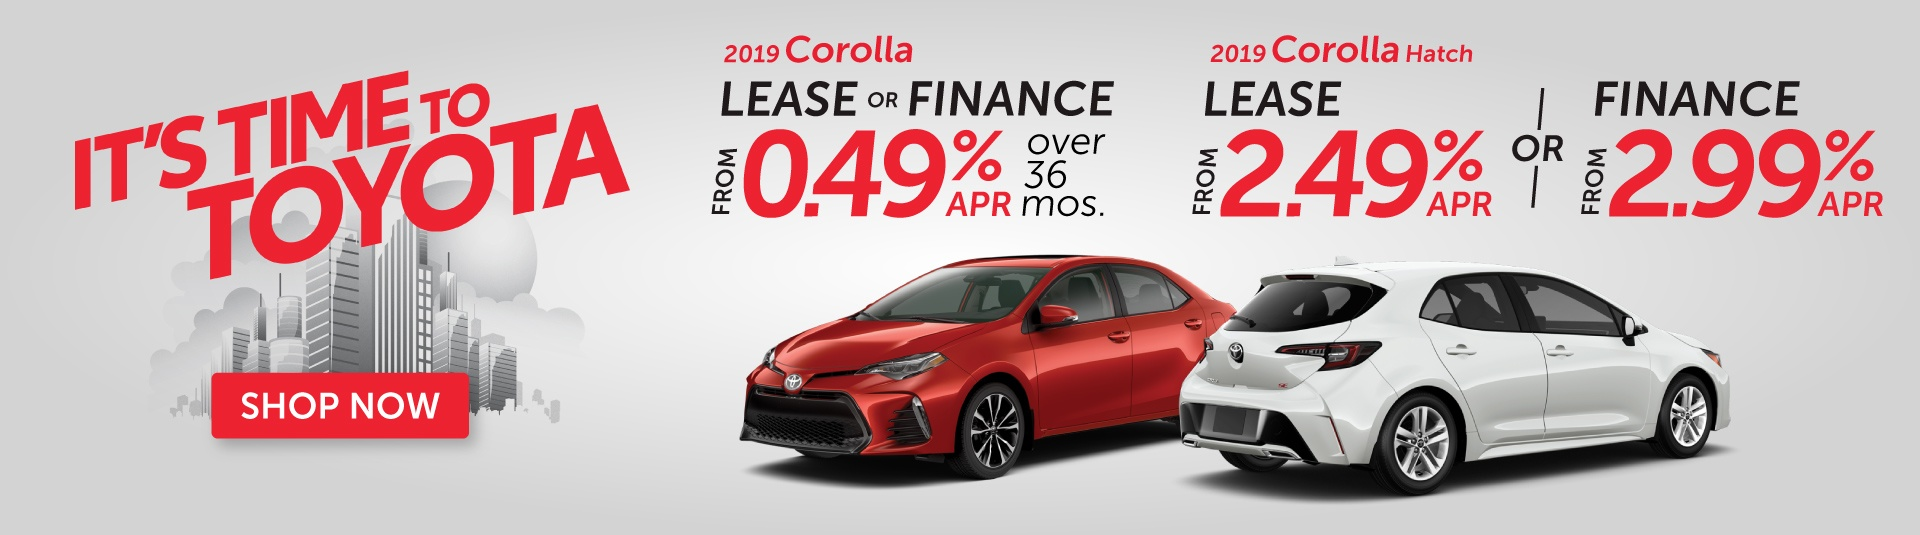 Goderich Toyota - It's Time To Toyota Event